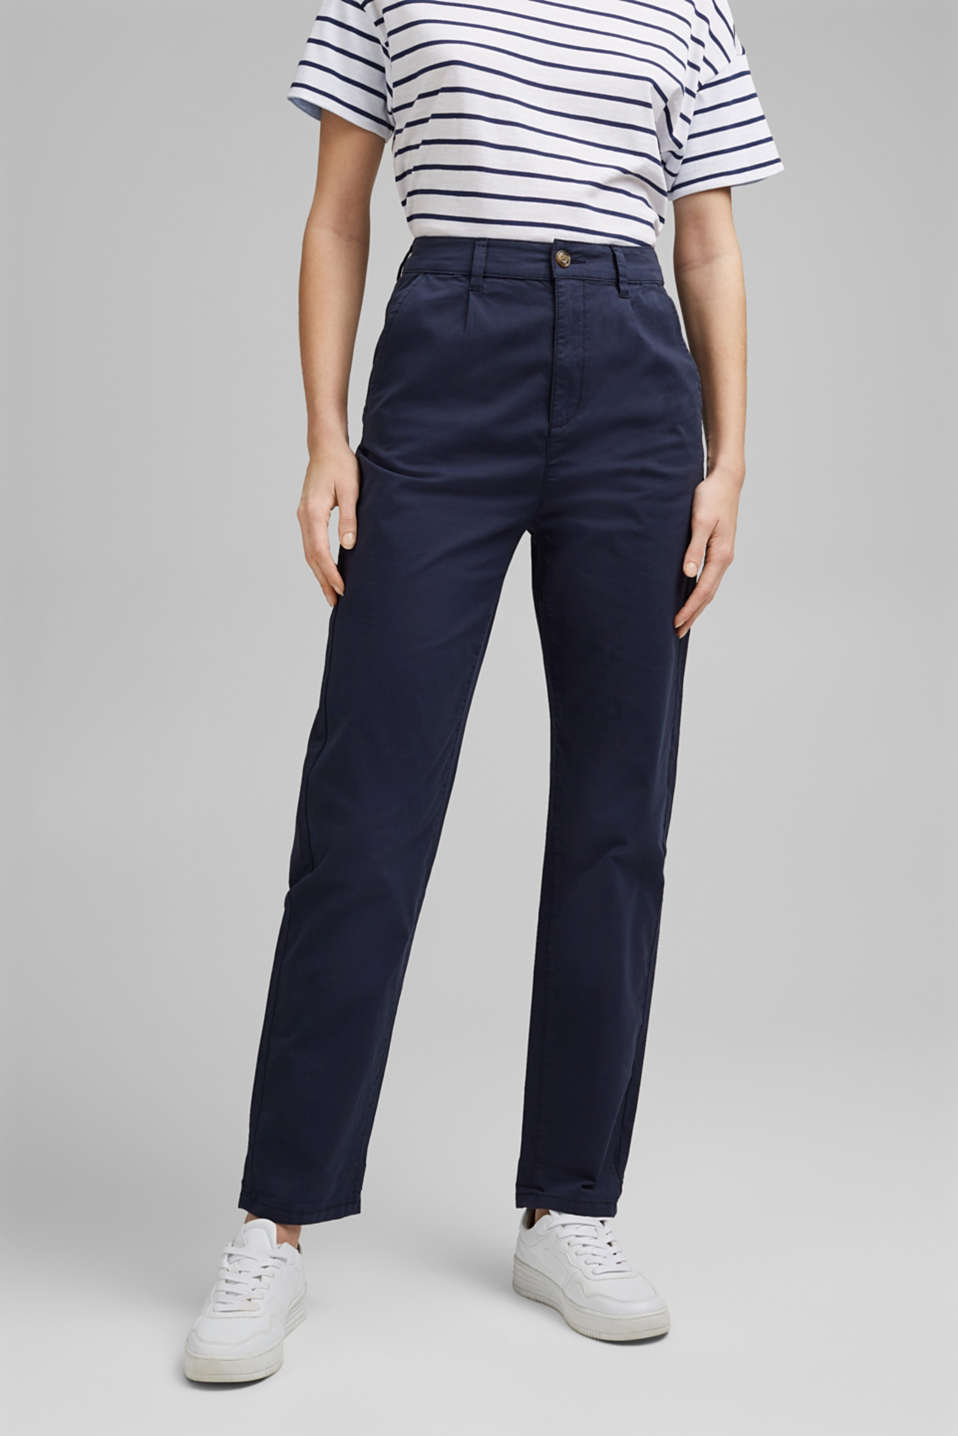 Esprit - Pima cotton chinos